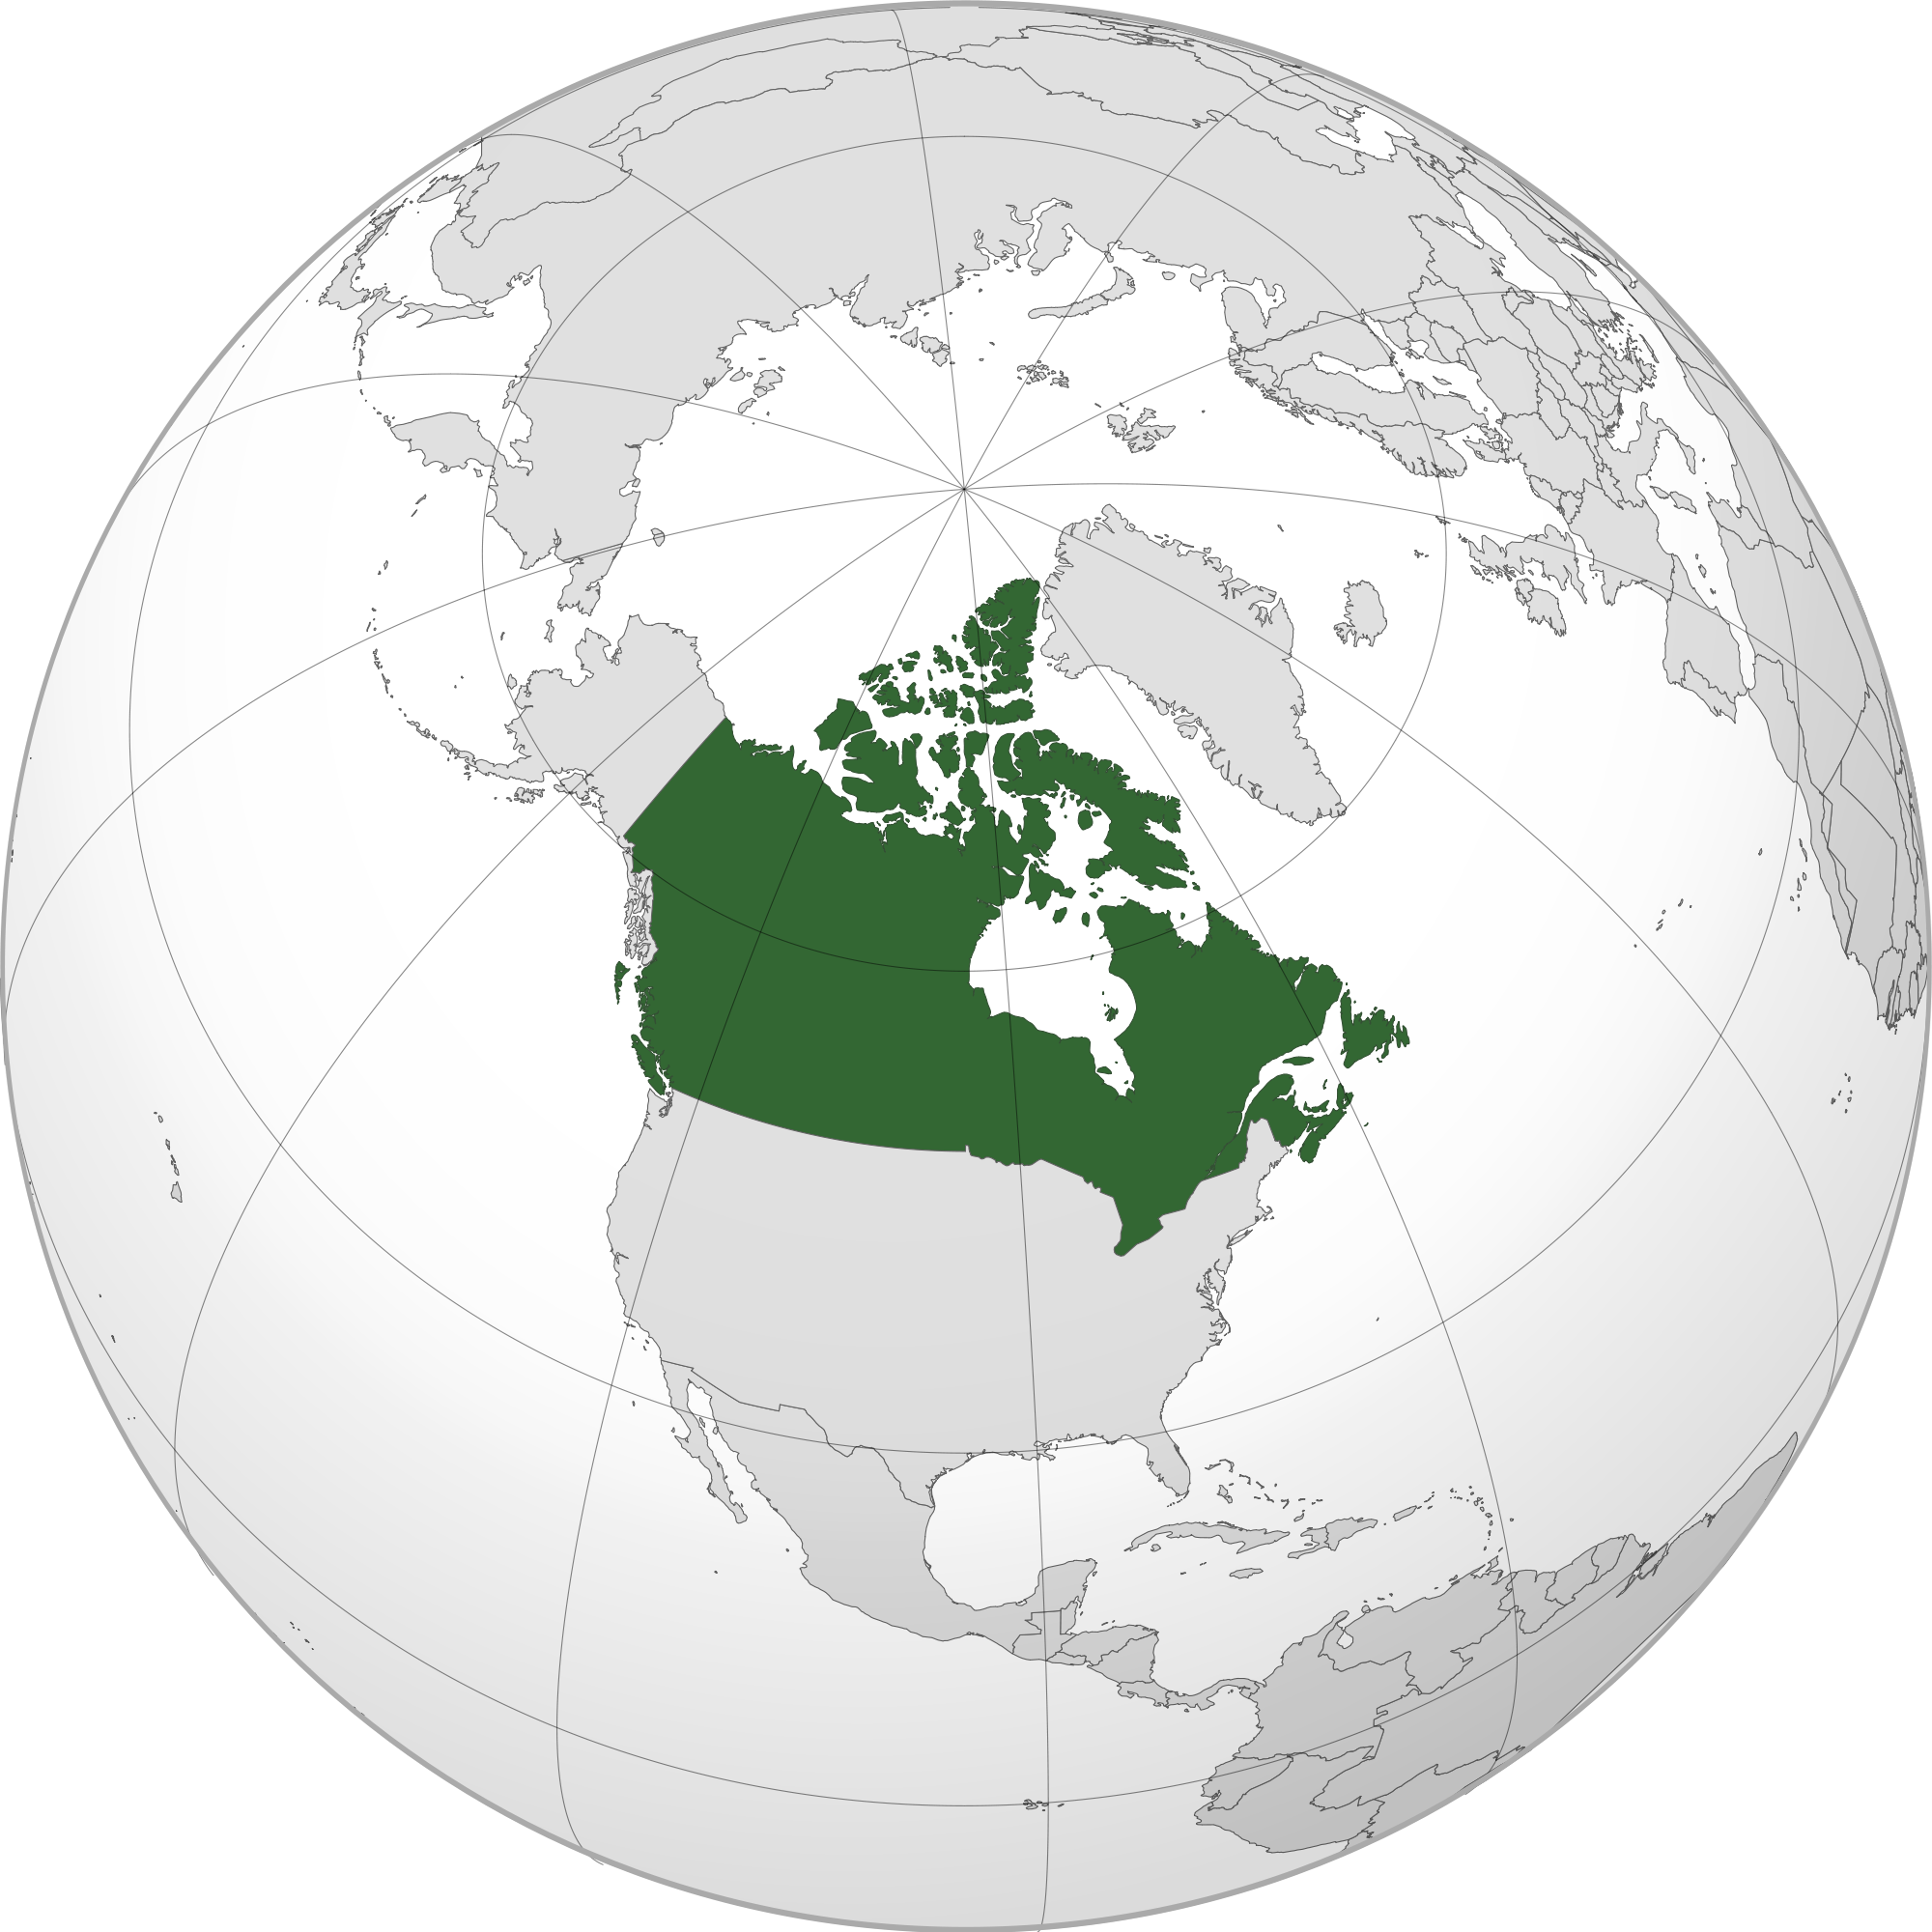 Canada Map Of The World.Location Of The Canada In The World Map